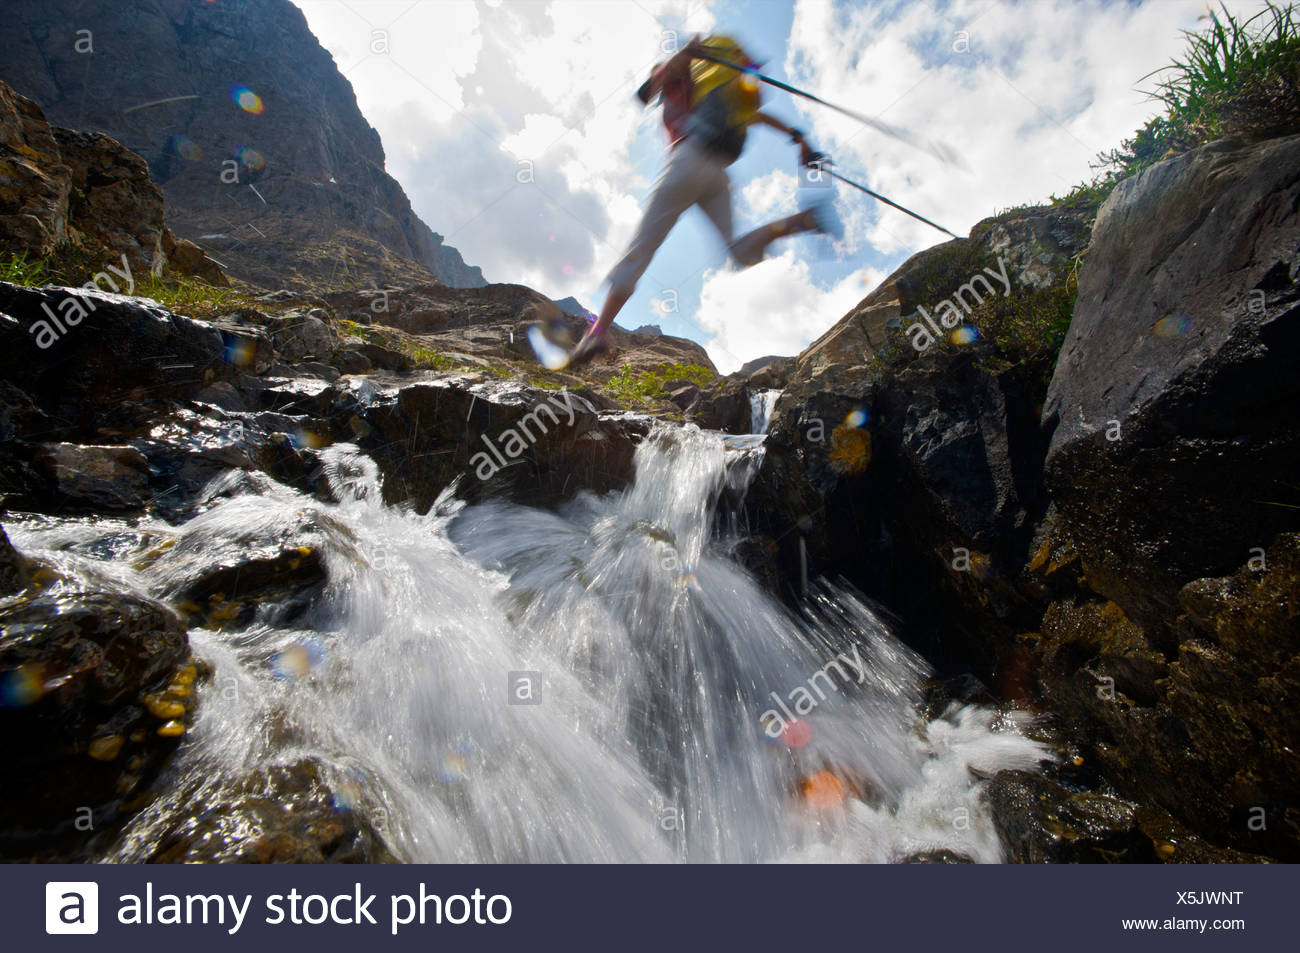 Hiker jumps over a creek on the Williwaw Lakes Trail in Chugach State Park, near Anchorage, Southcentral Alaska, Summer - Stock Image